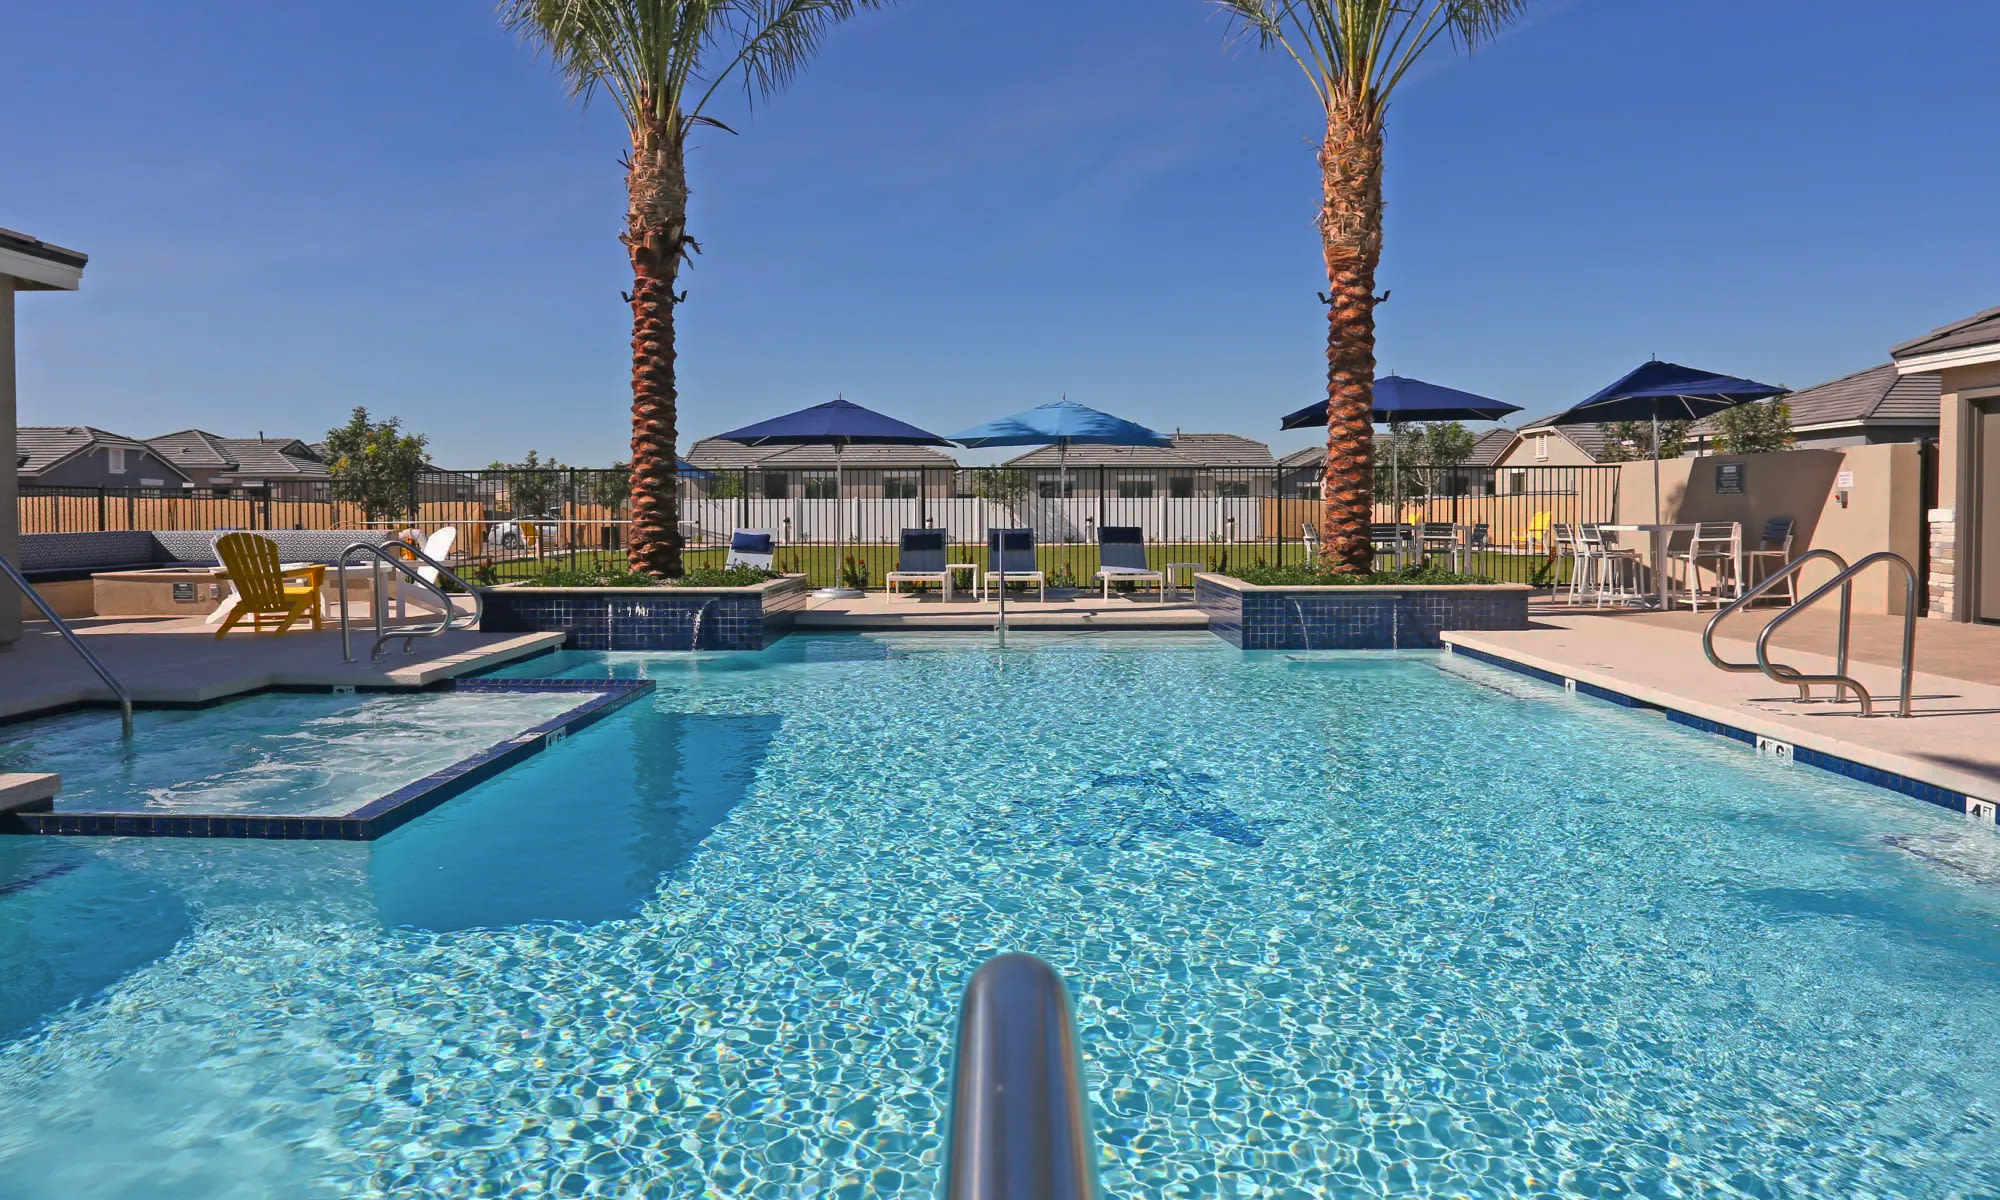 Apartments at Christopher Todd Communities on Camelback in Litchfield Park, Arizona